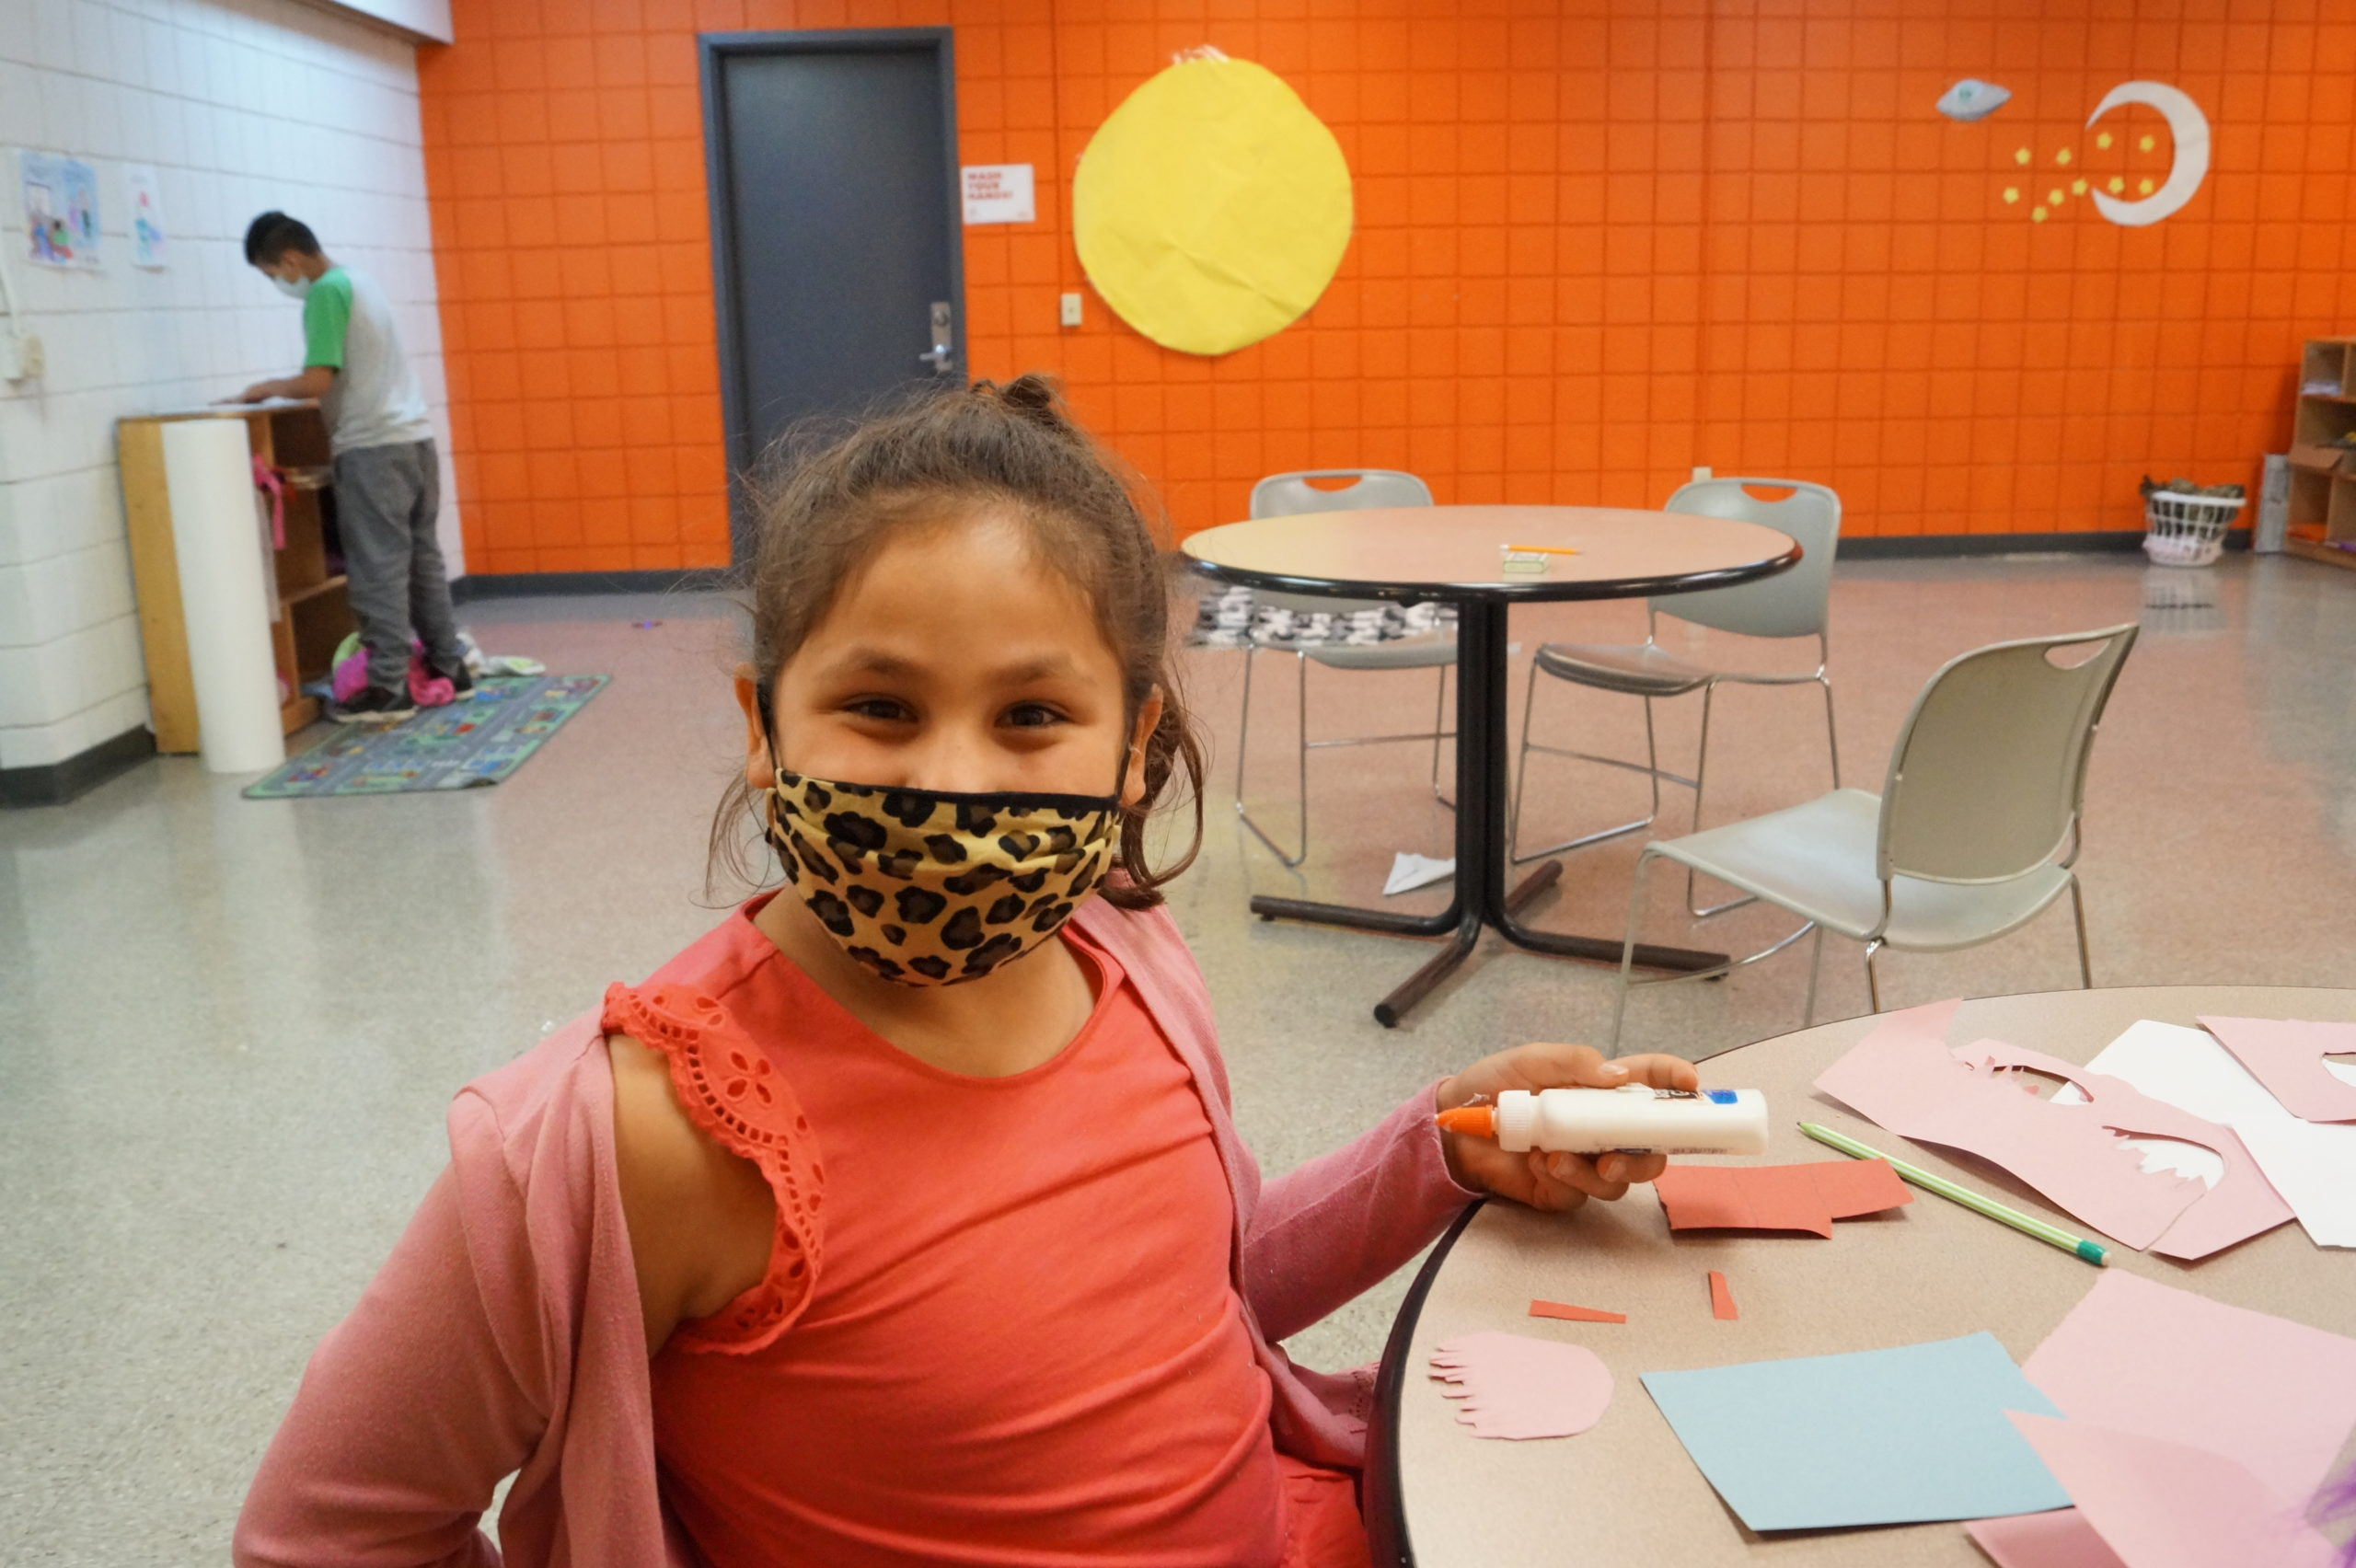 A young girl in an orange tanktop is wearing a leopard print mask over her nose and mouth and holding glue while sitting at a table